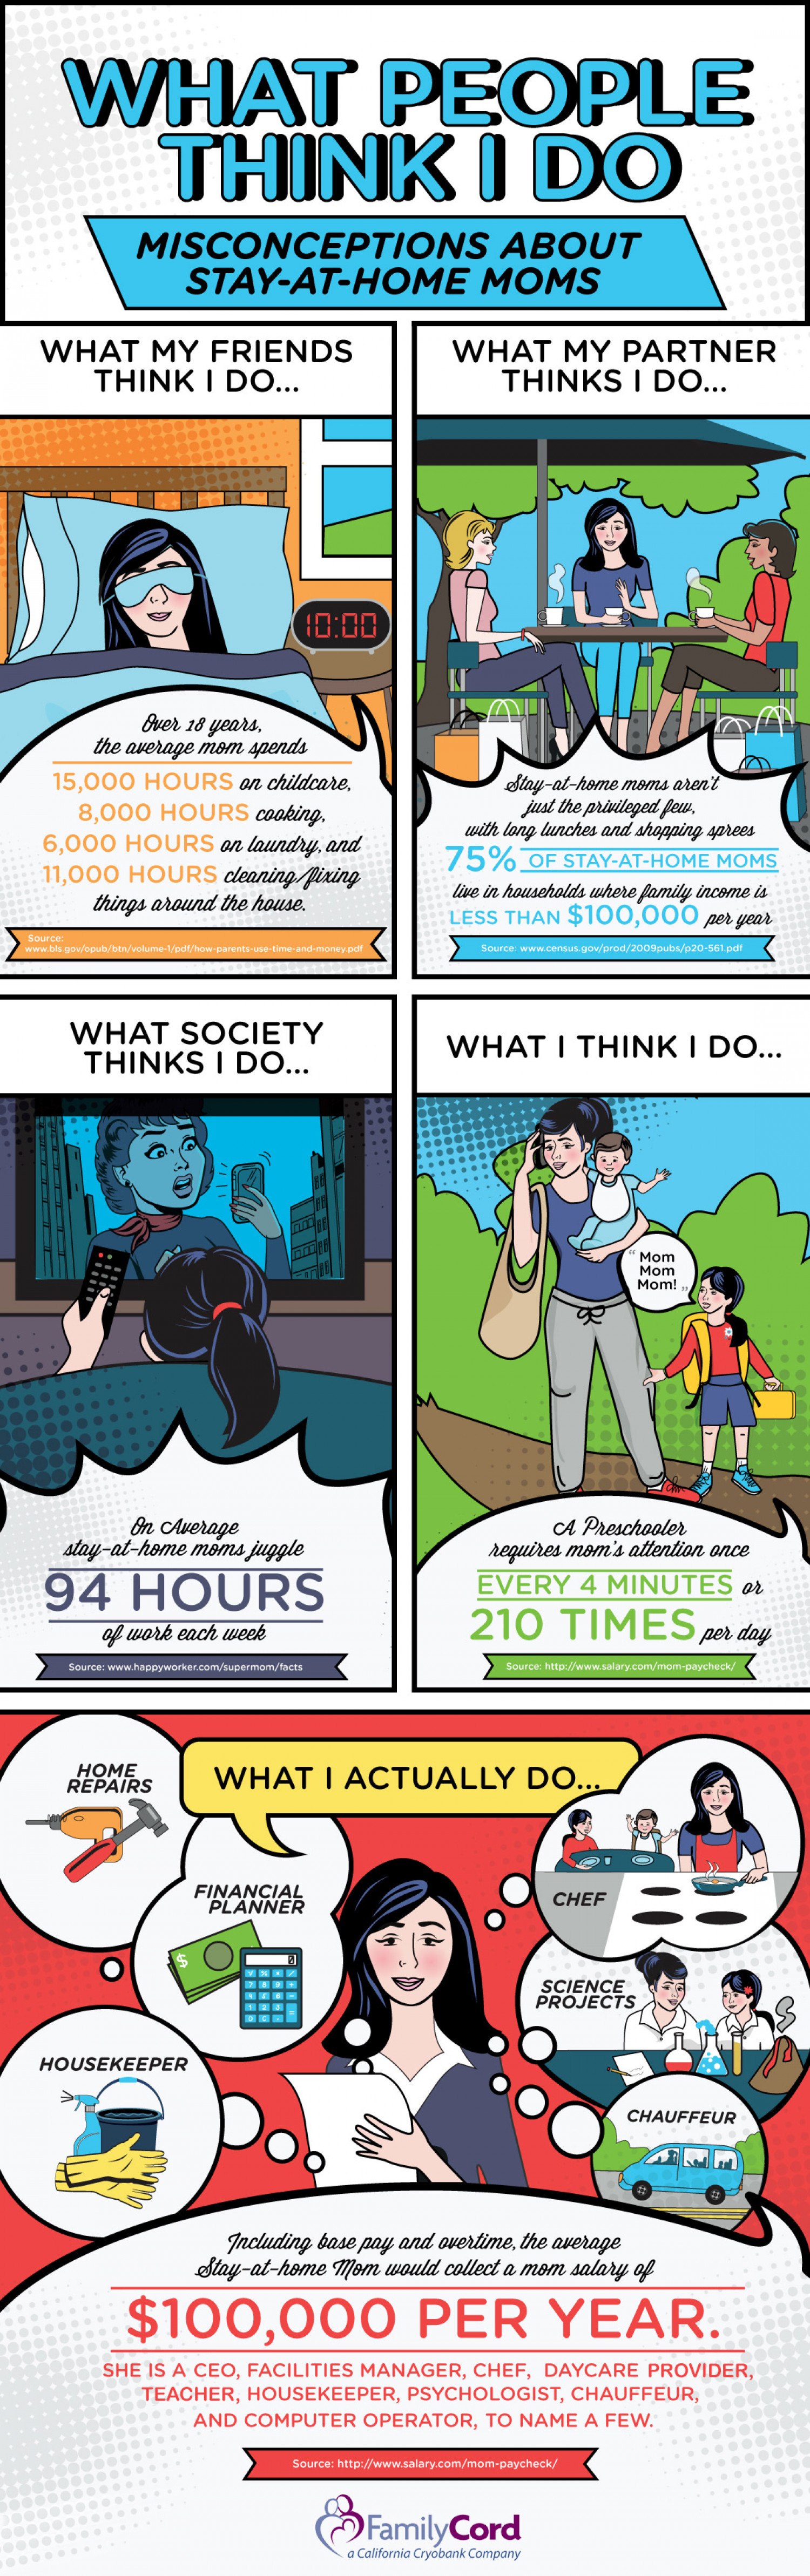 What People Think I Do: Misconceptions About Stay at Home Moms Infographic